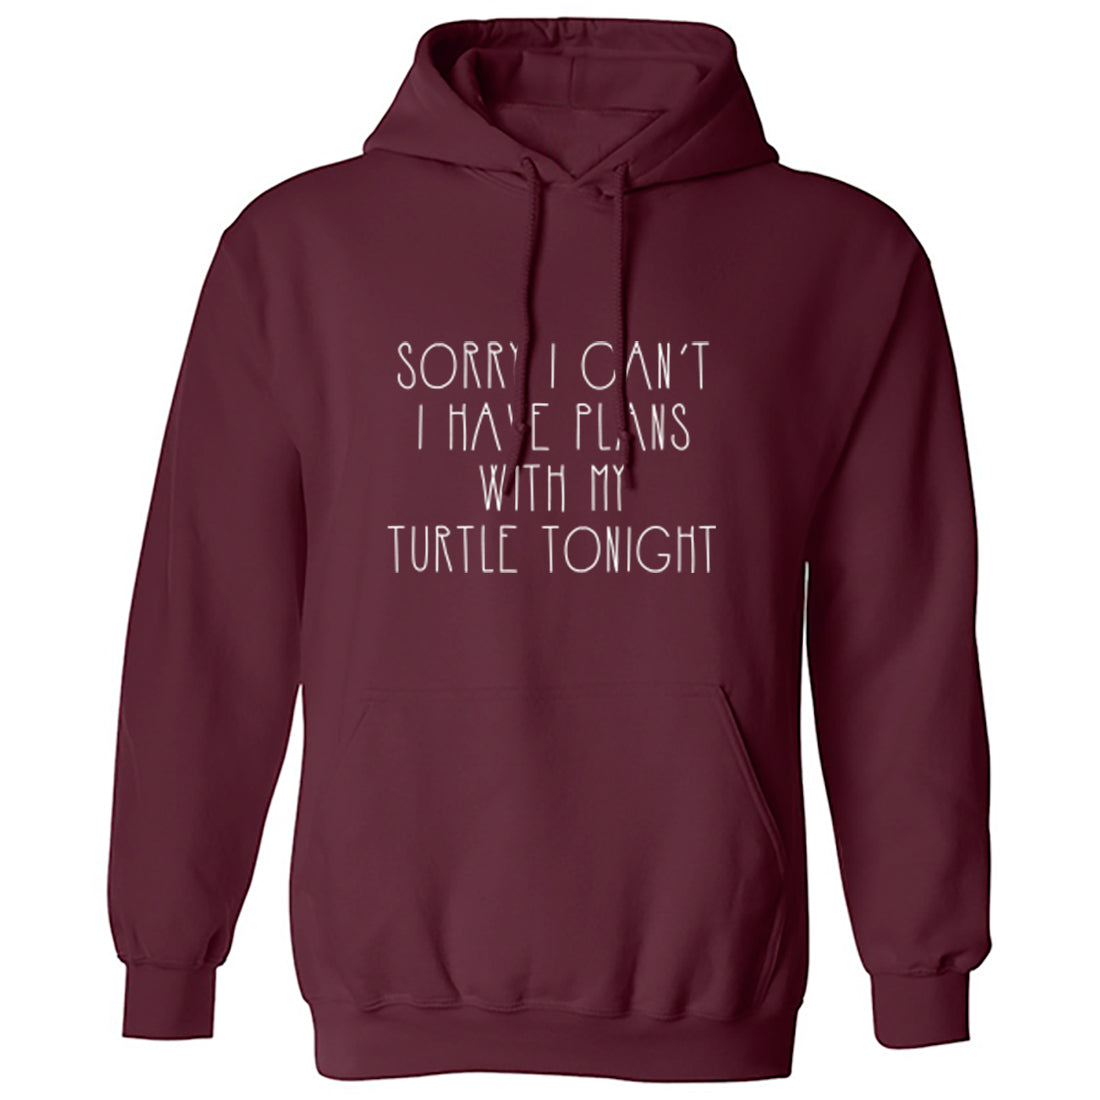 Sorry I Can't Tonight I Have Plans With My Turtle Unisex Hoodie K1287 - Illustrated Identity Ltd.